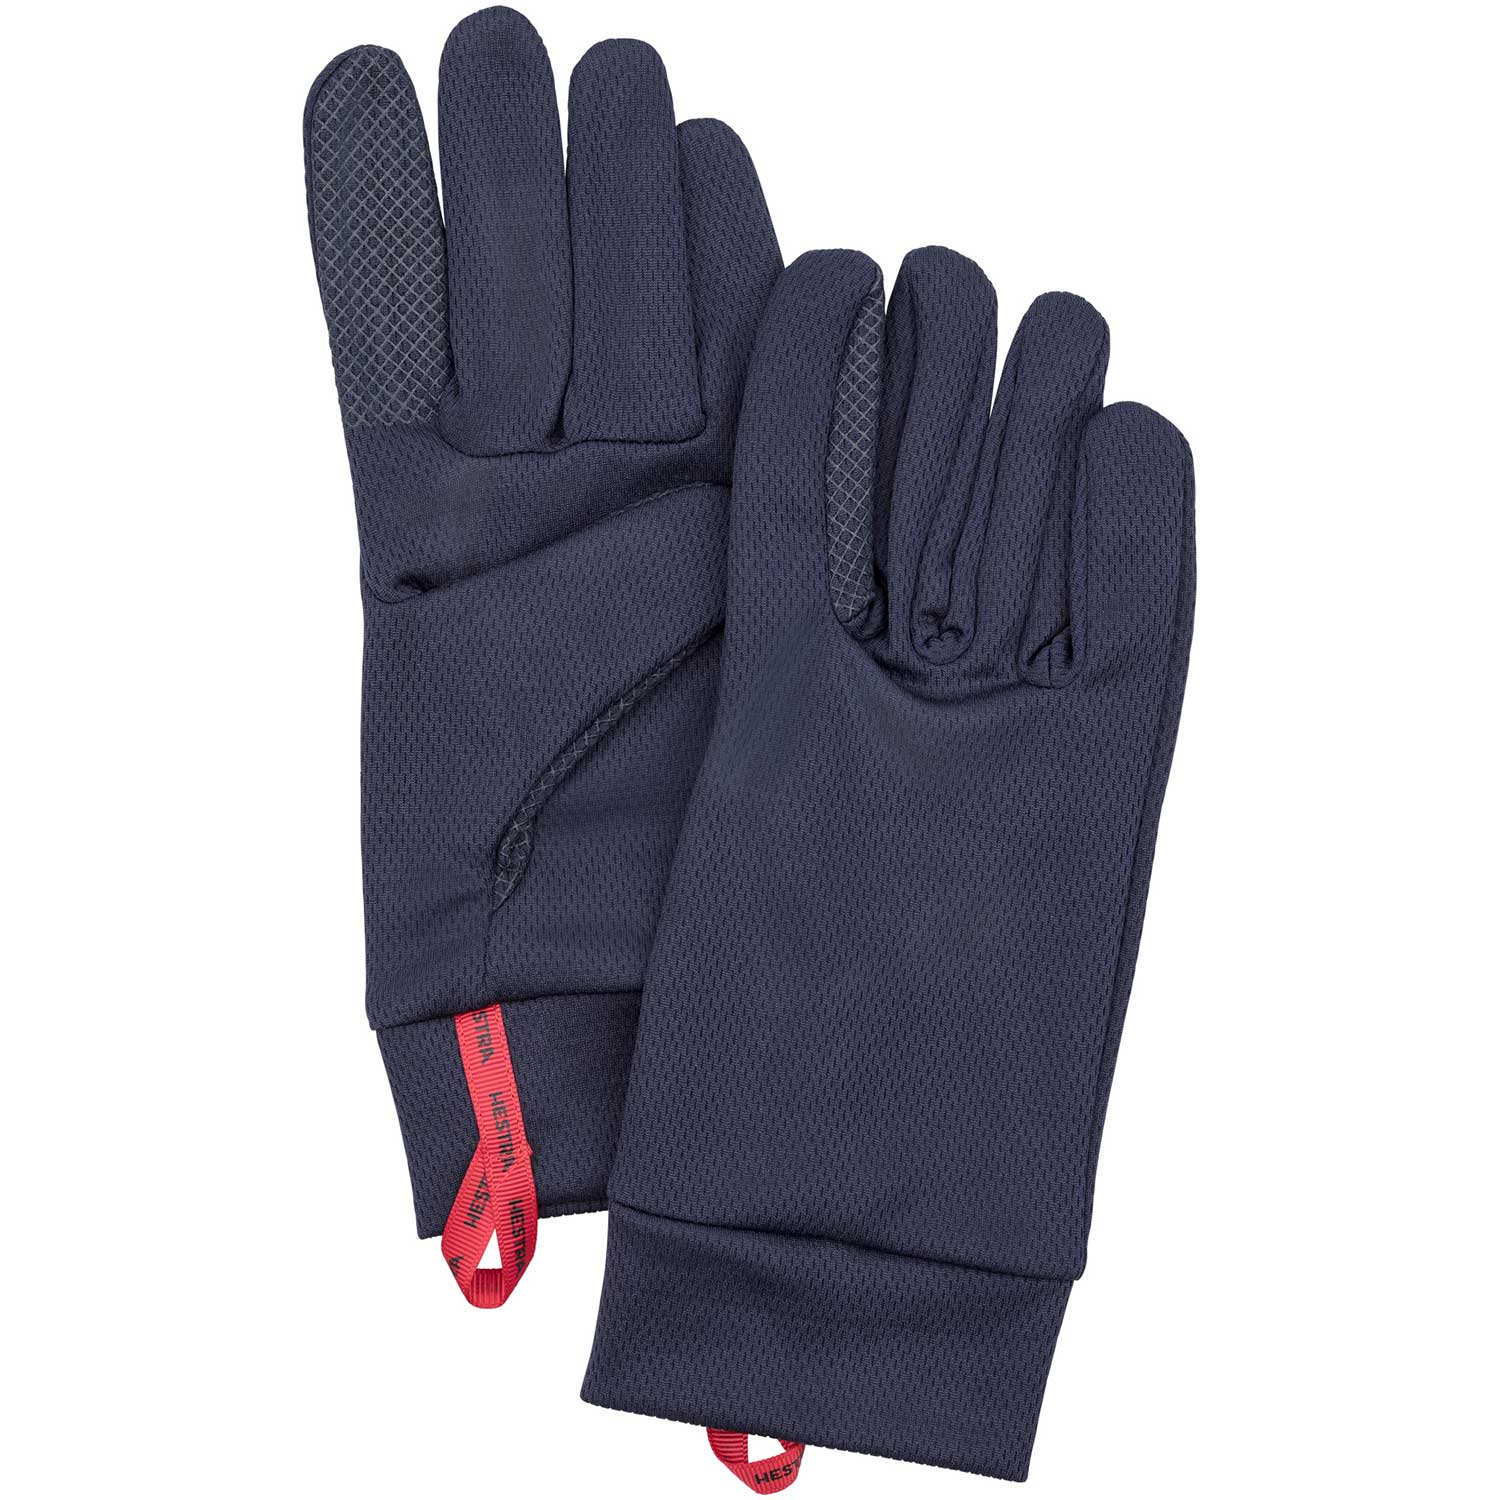 34380 TOUCH POINT WOOL DRY